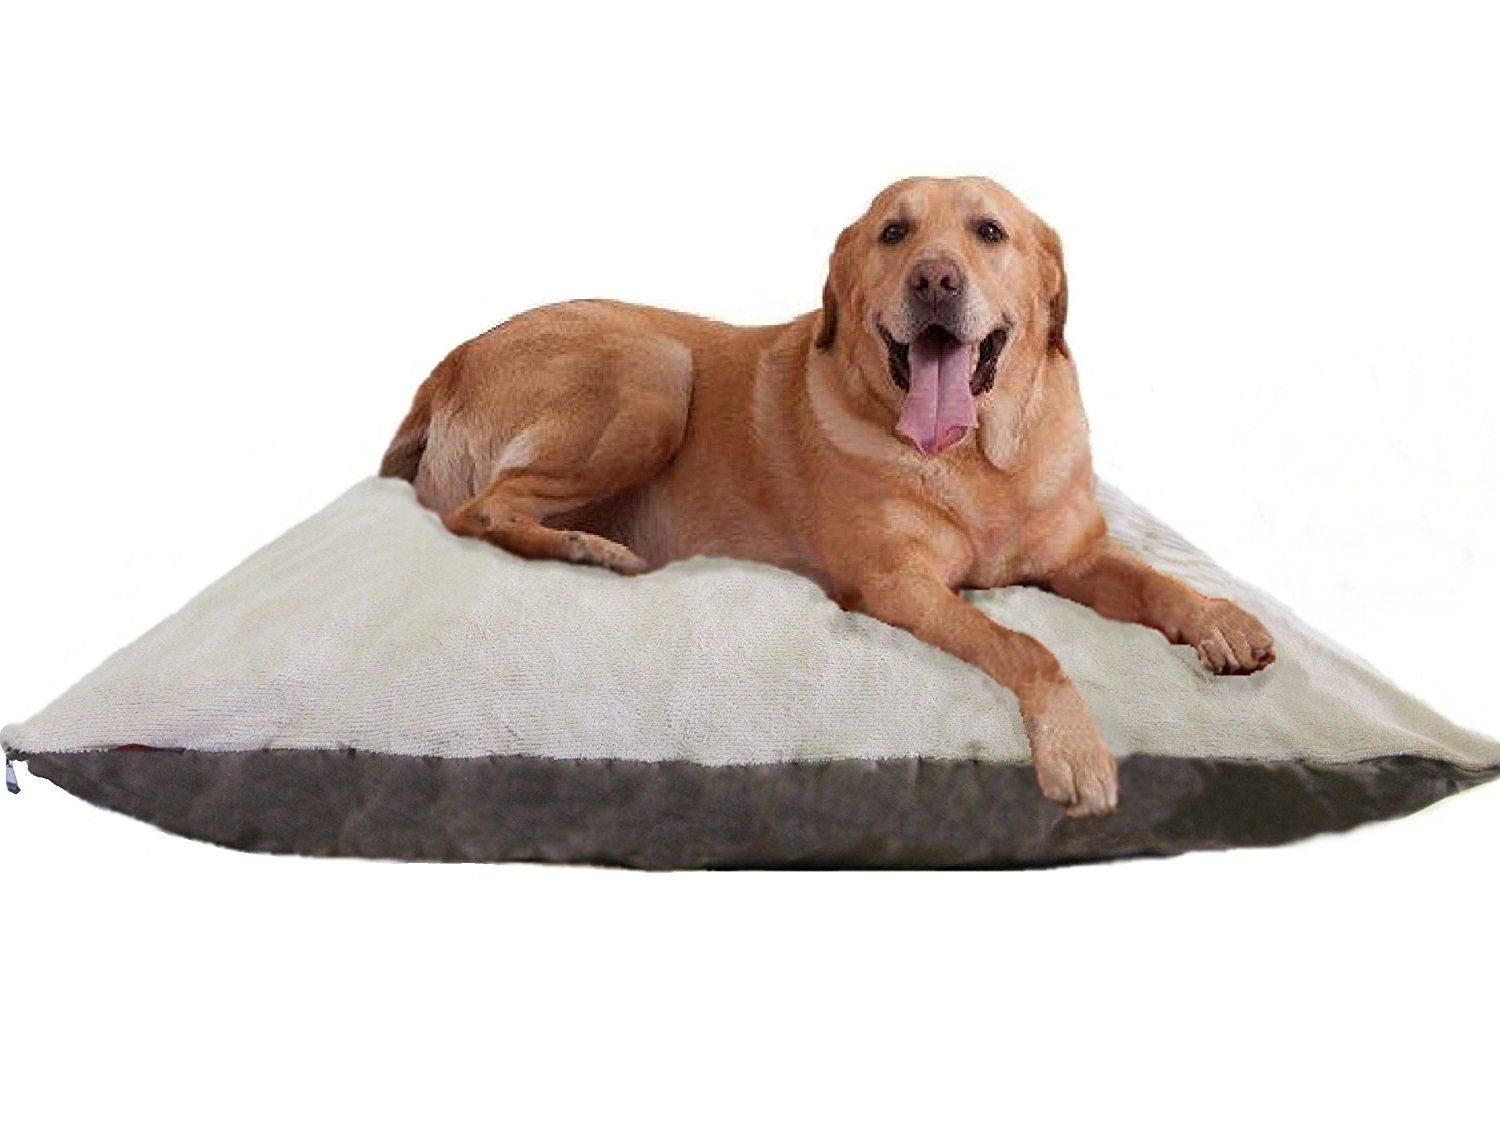 Ehomegoods 54x47 Xxxl Beige Color Jumbo Orthopedic Micro Cushion Memory Foam Pet Bed Pillow For Xlarge Dog With 2 External Memory Foam Pet Bed My Pet Dog Pets